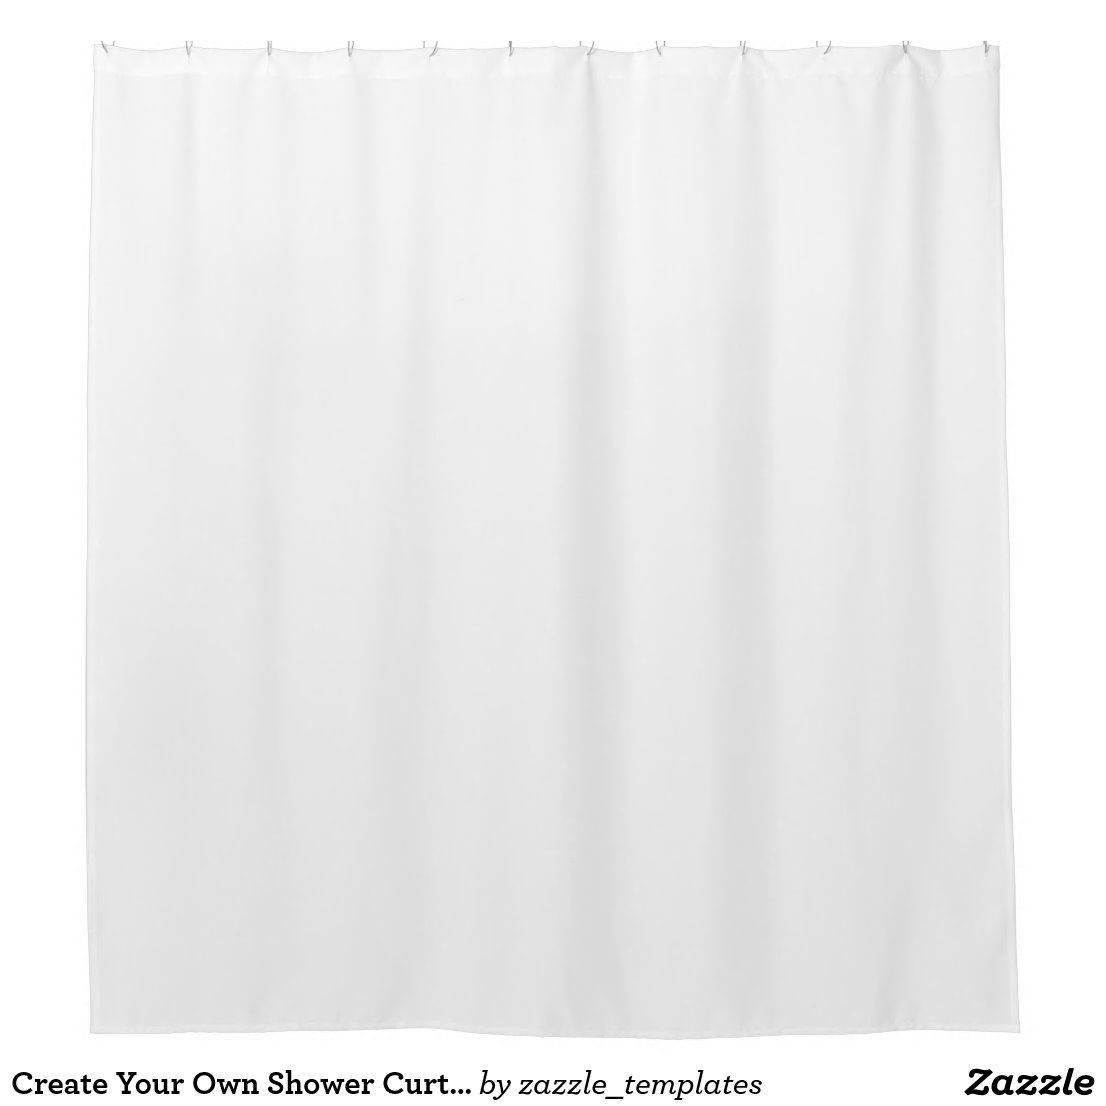 Create Your Own Shower Curtain In 2020 Cool Shower Curtains